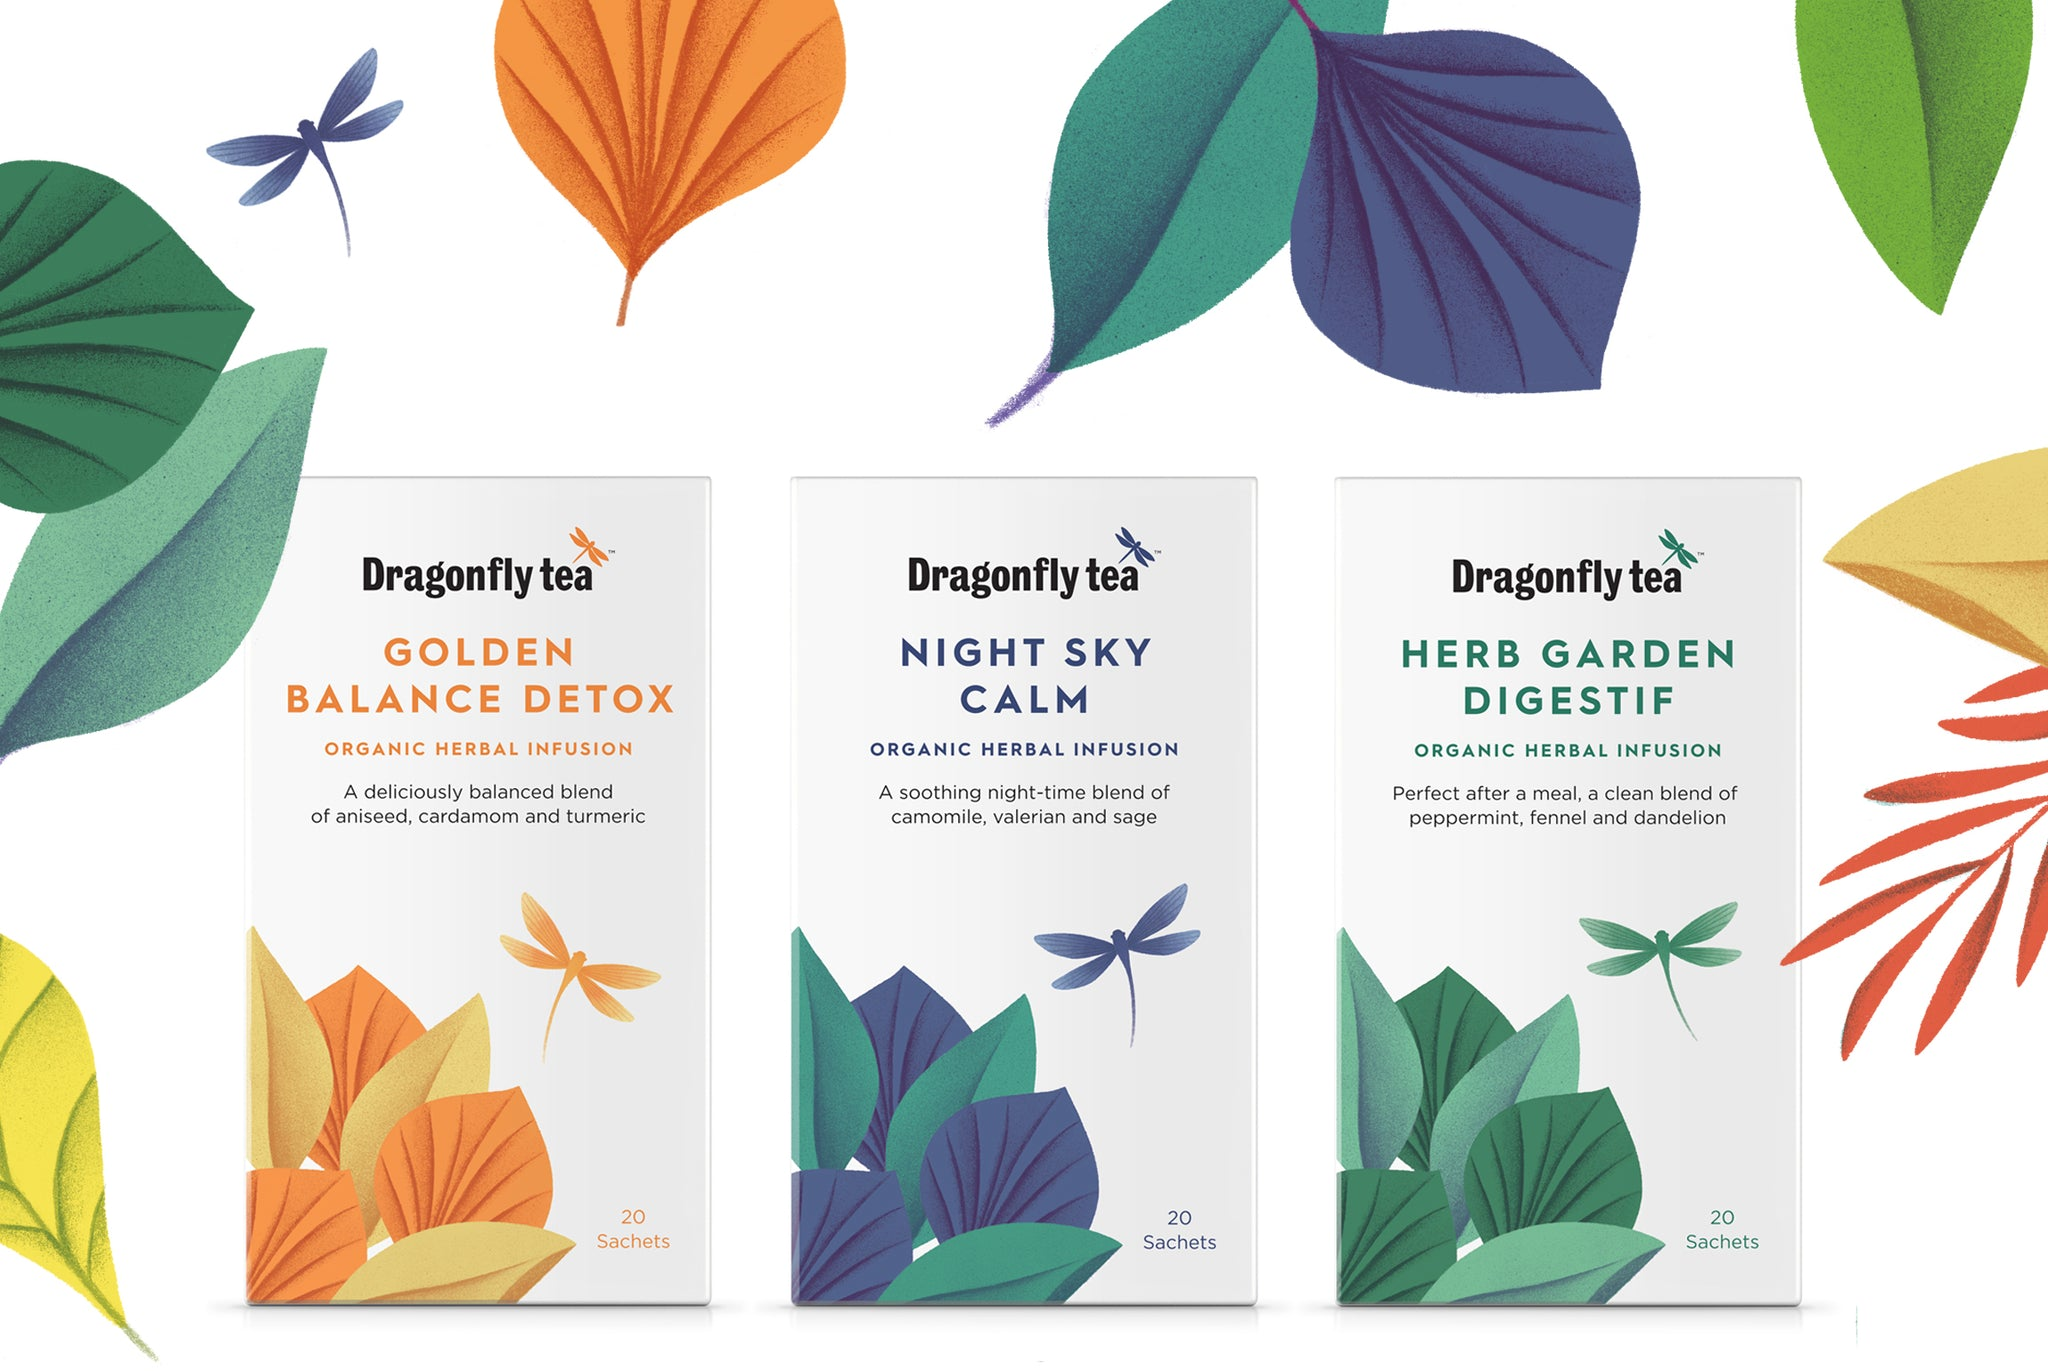 New delicious Dragonfly herbal tea infusions